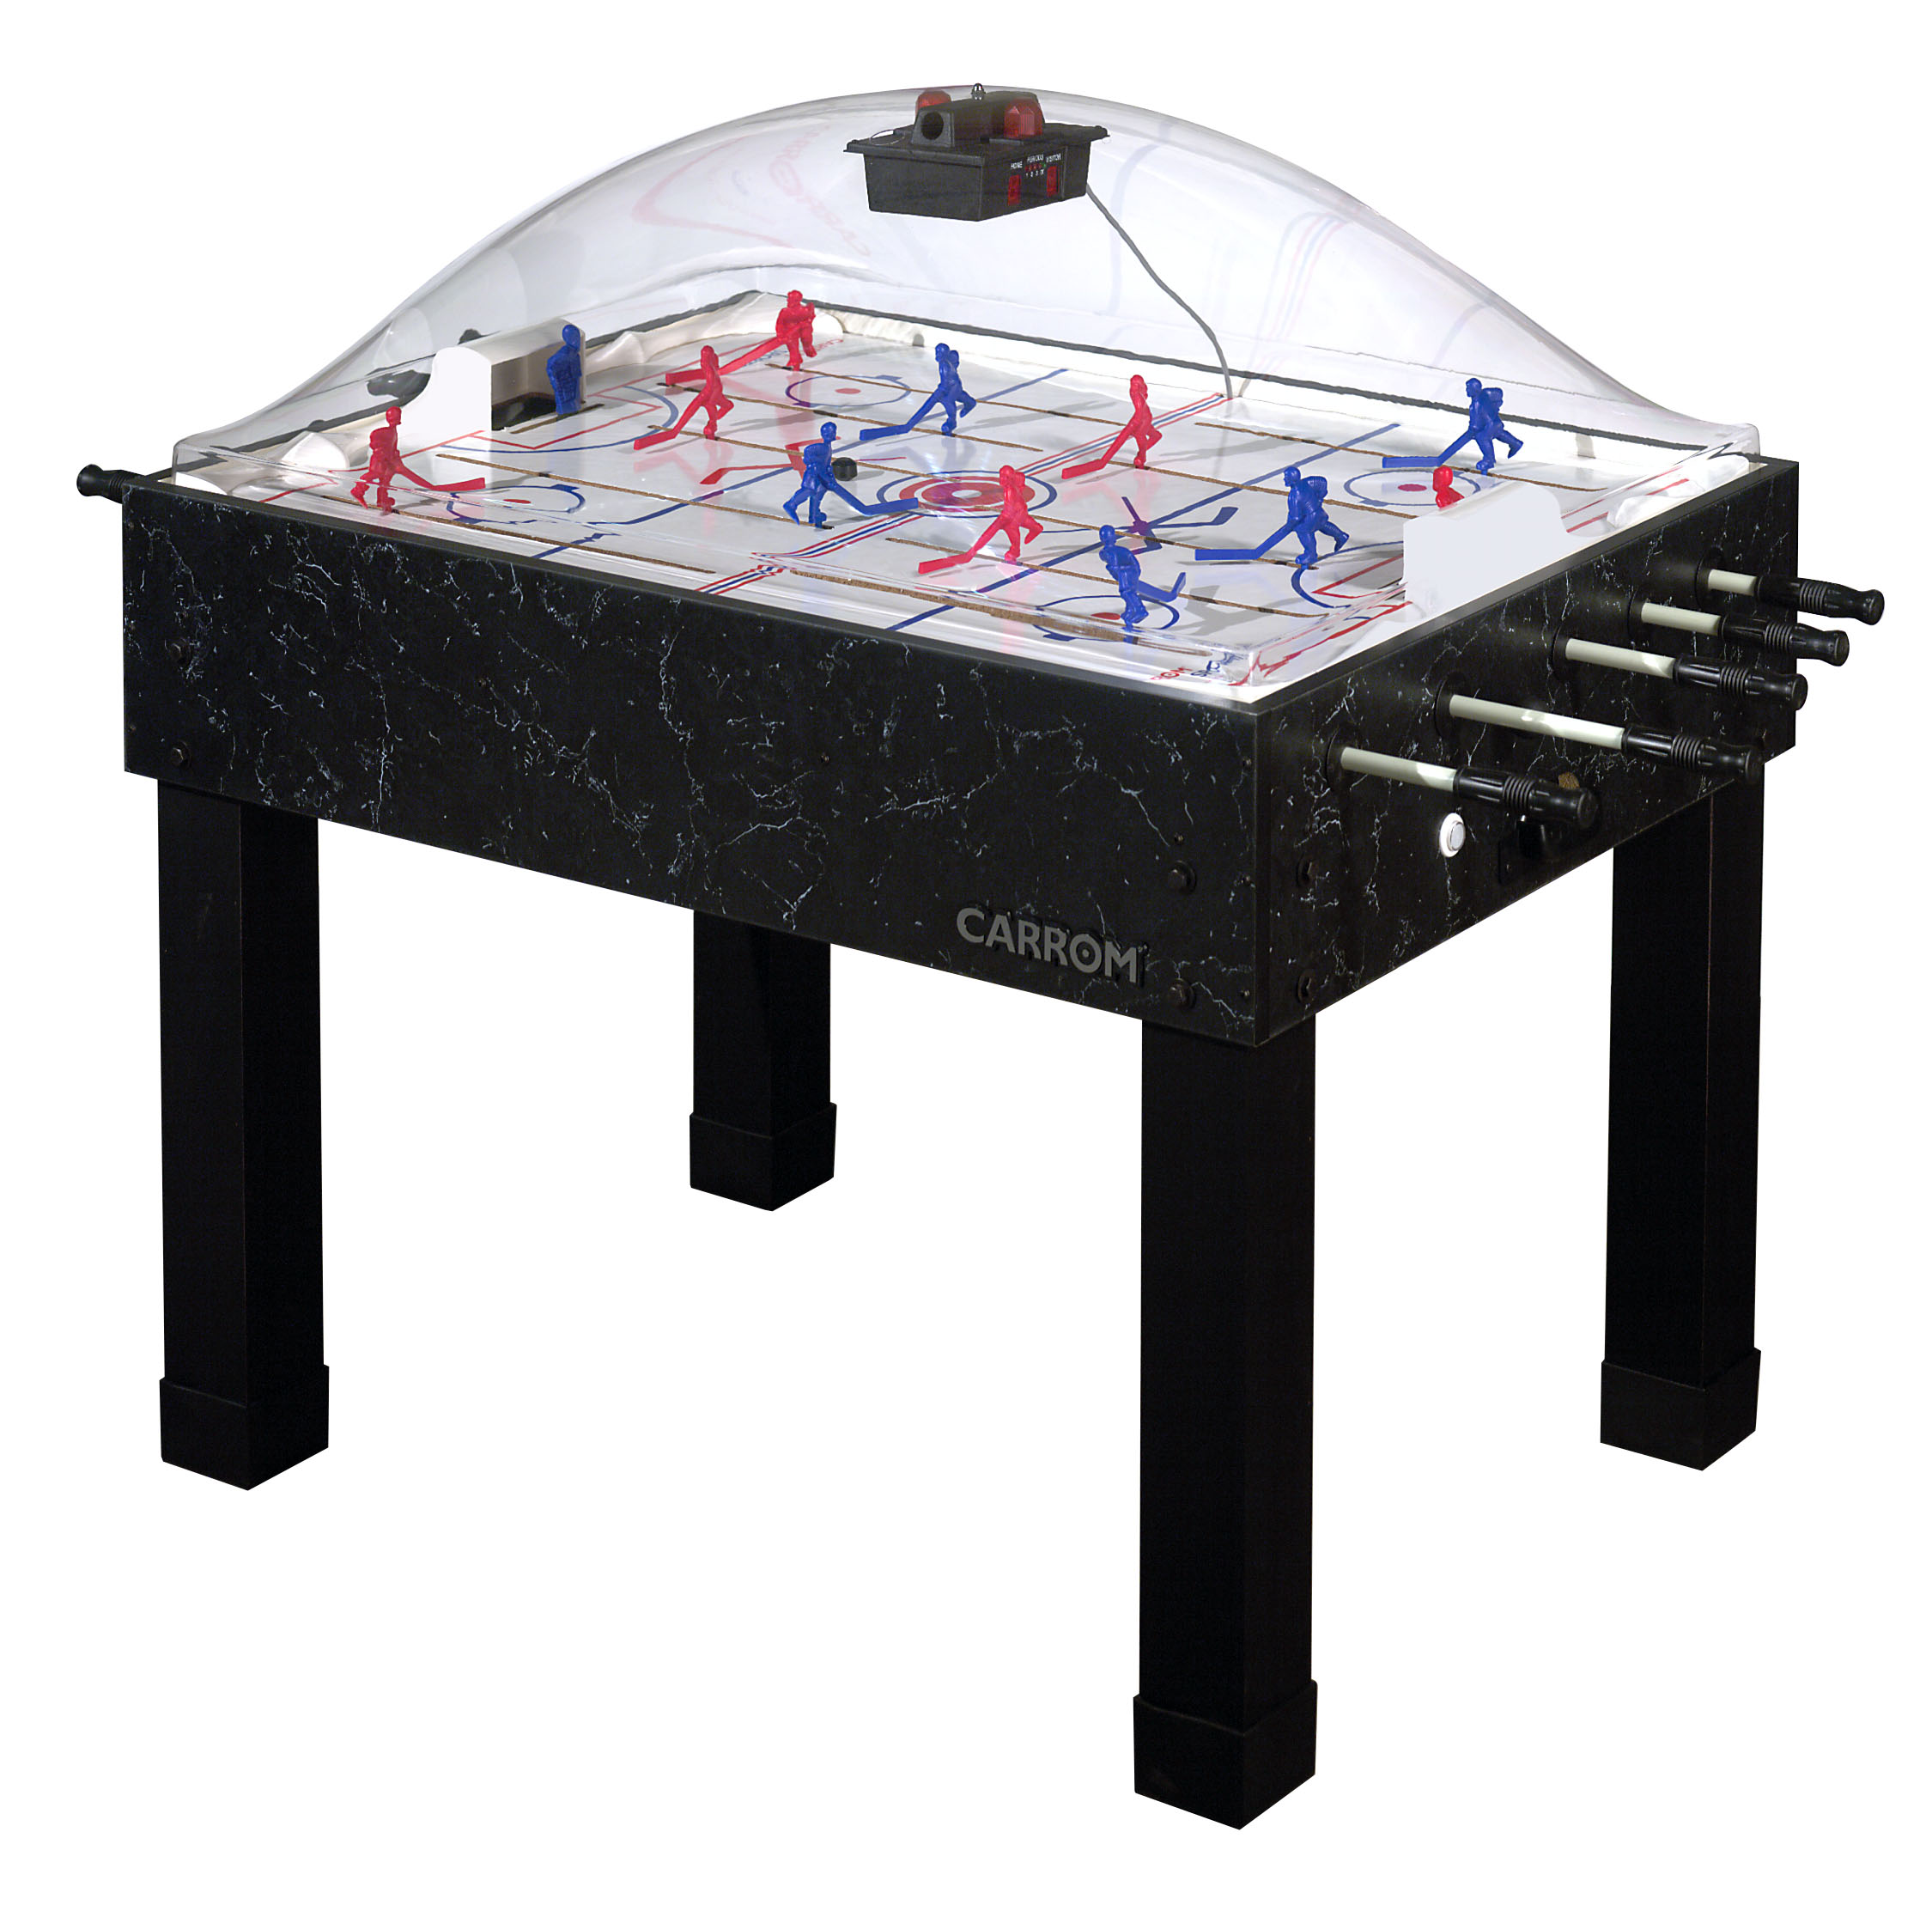 Foosball Tables · Image/jpeg